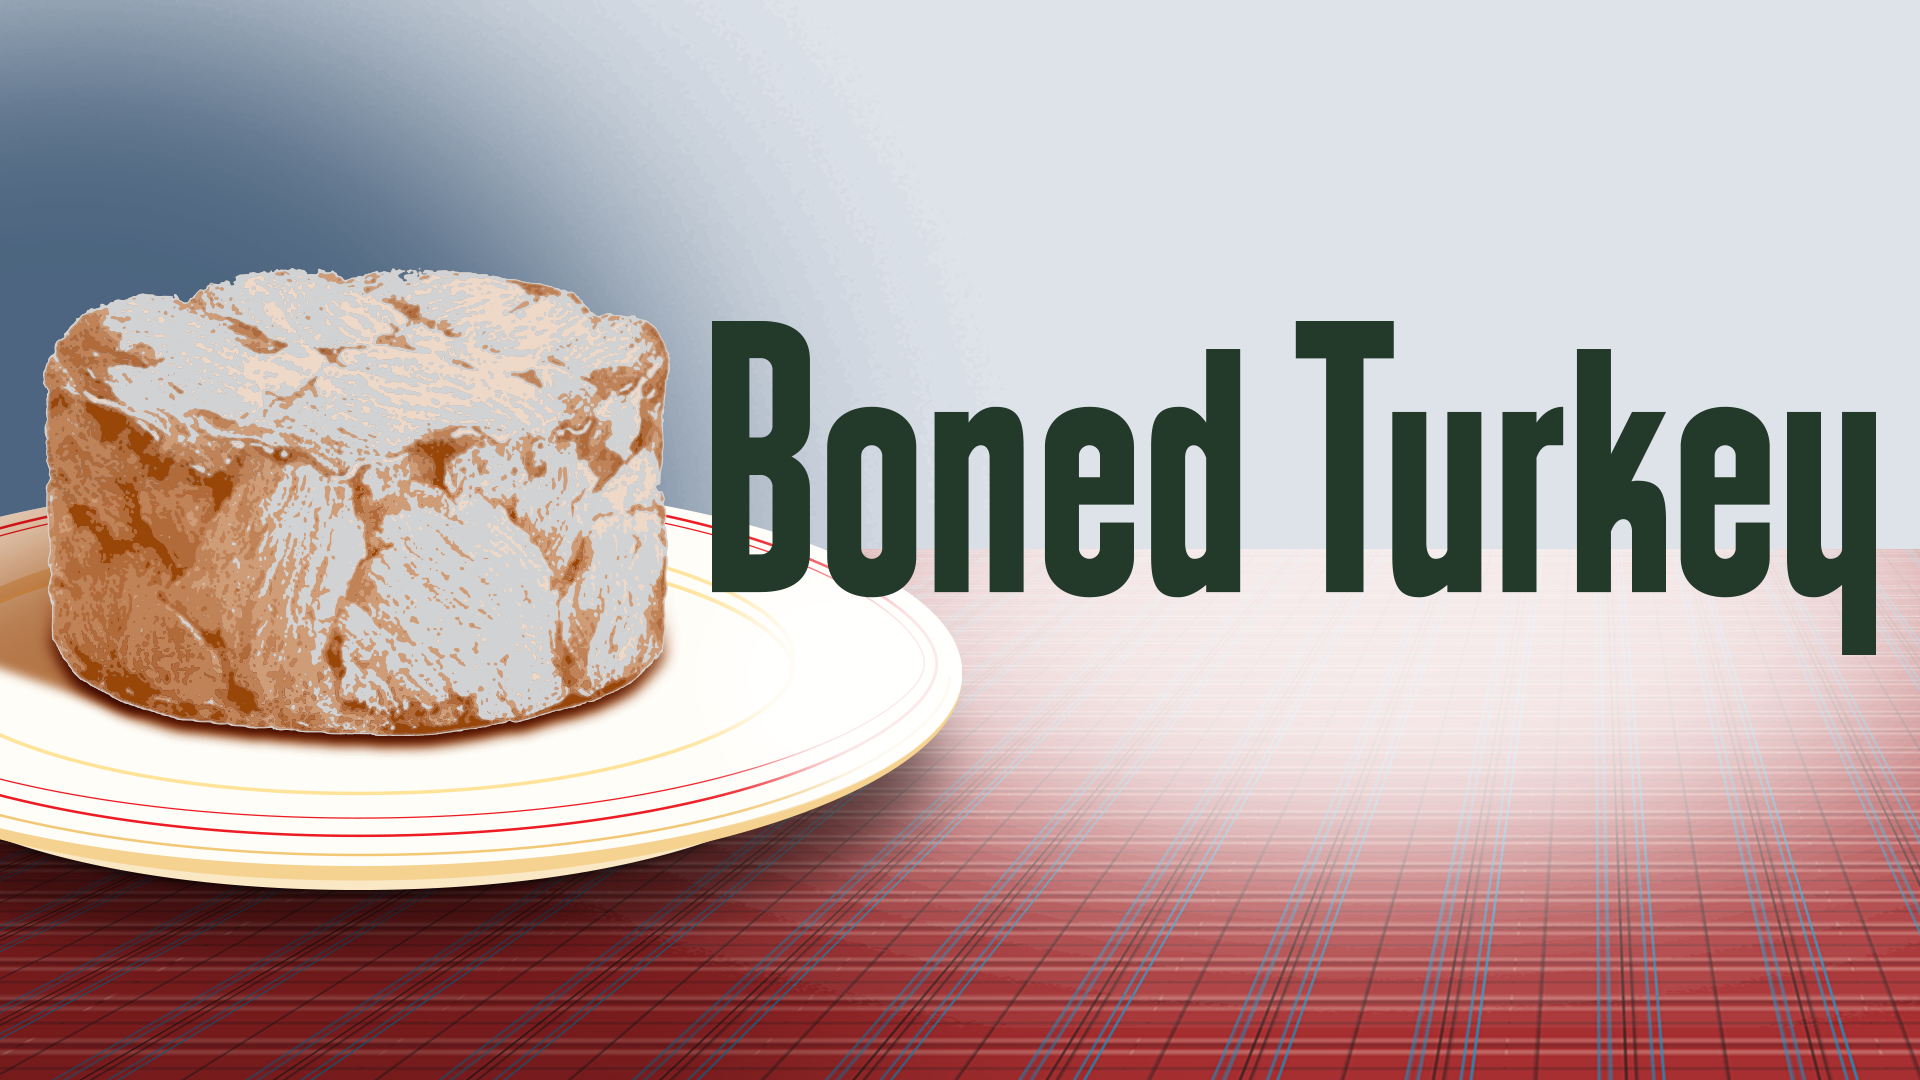 Buy and download Boned Turkey cool fonts